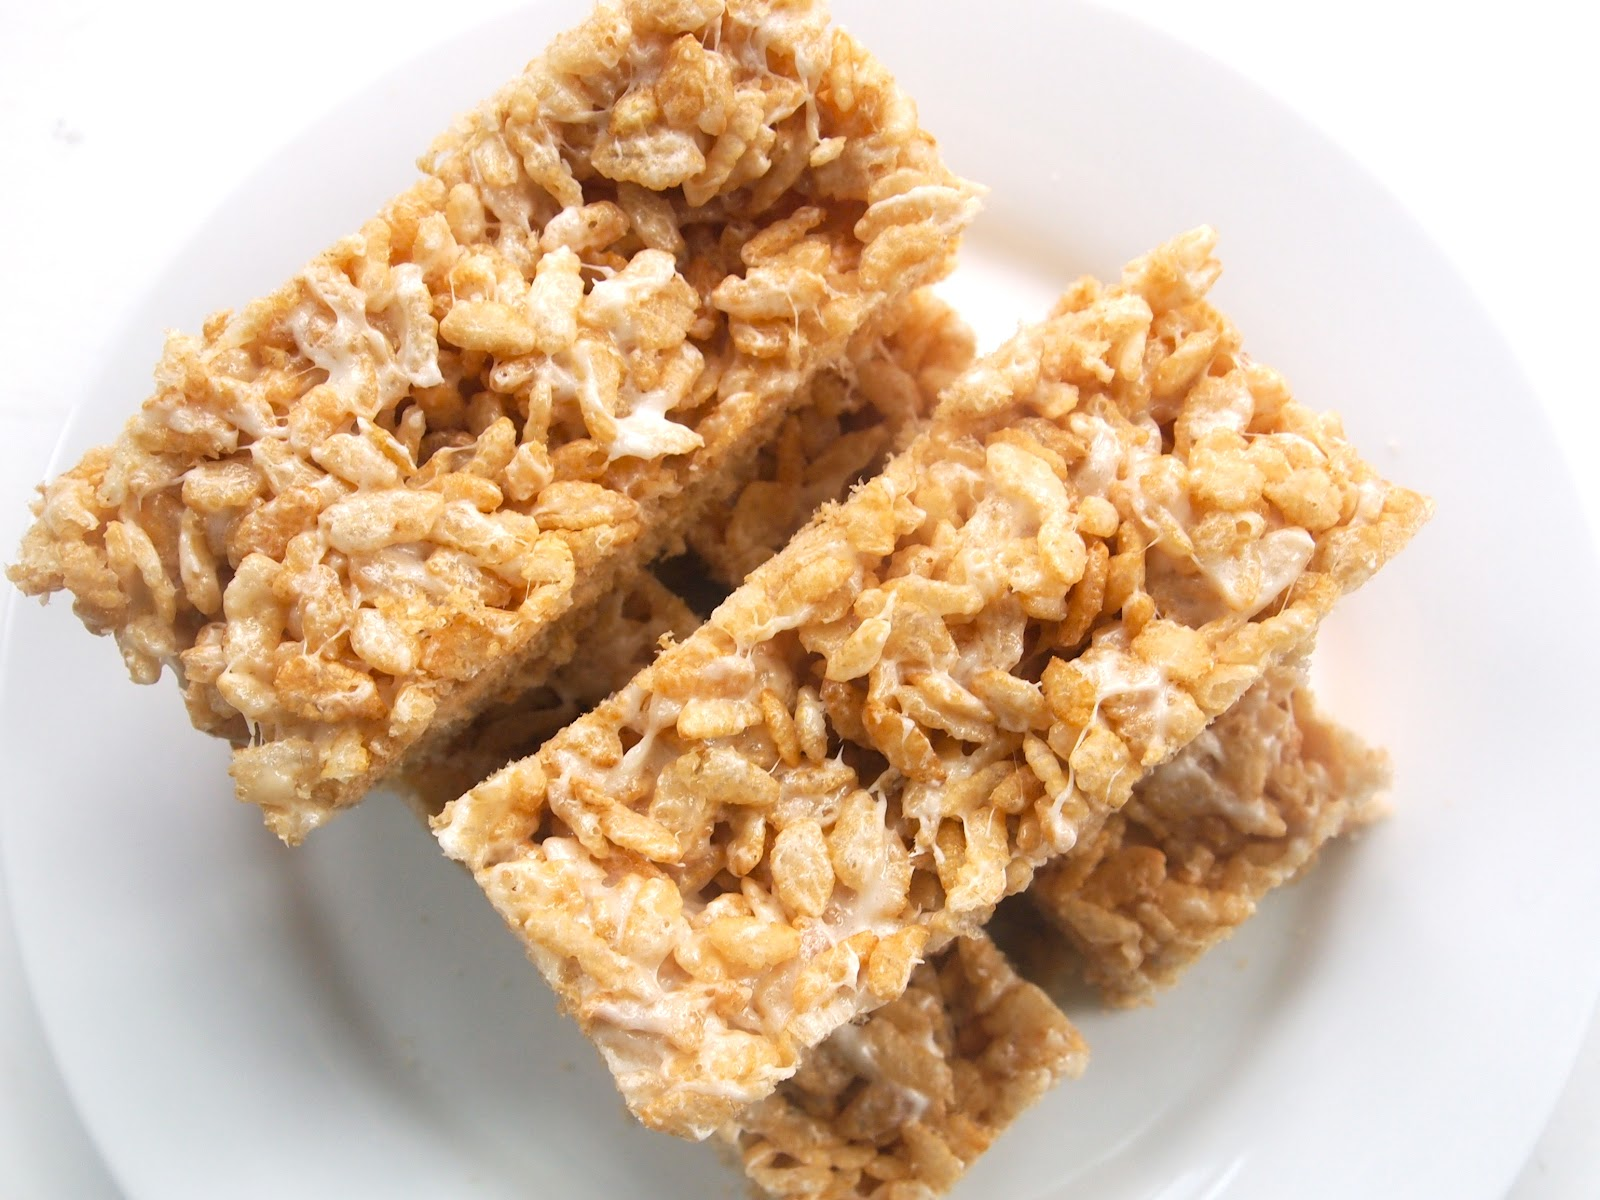 Vegan rice cereal marshmallow treats | Michelle's tiny kitchen